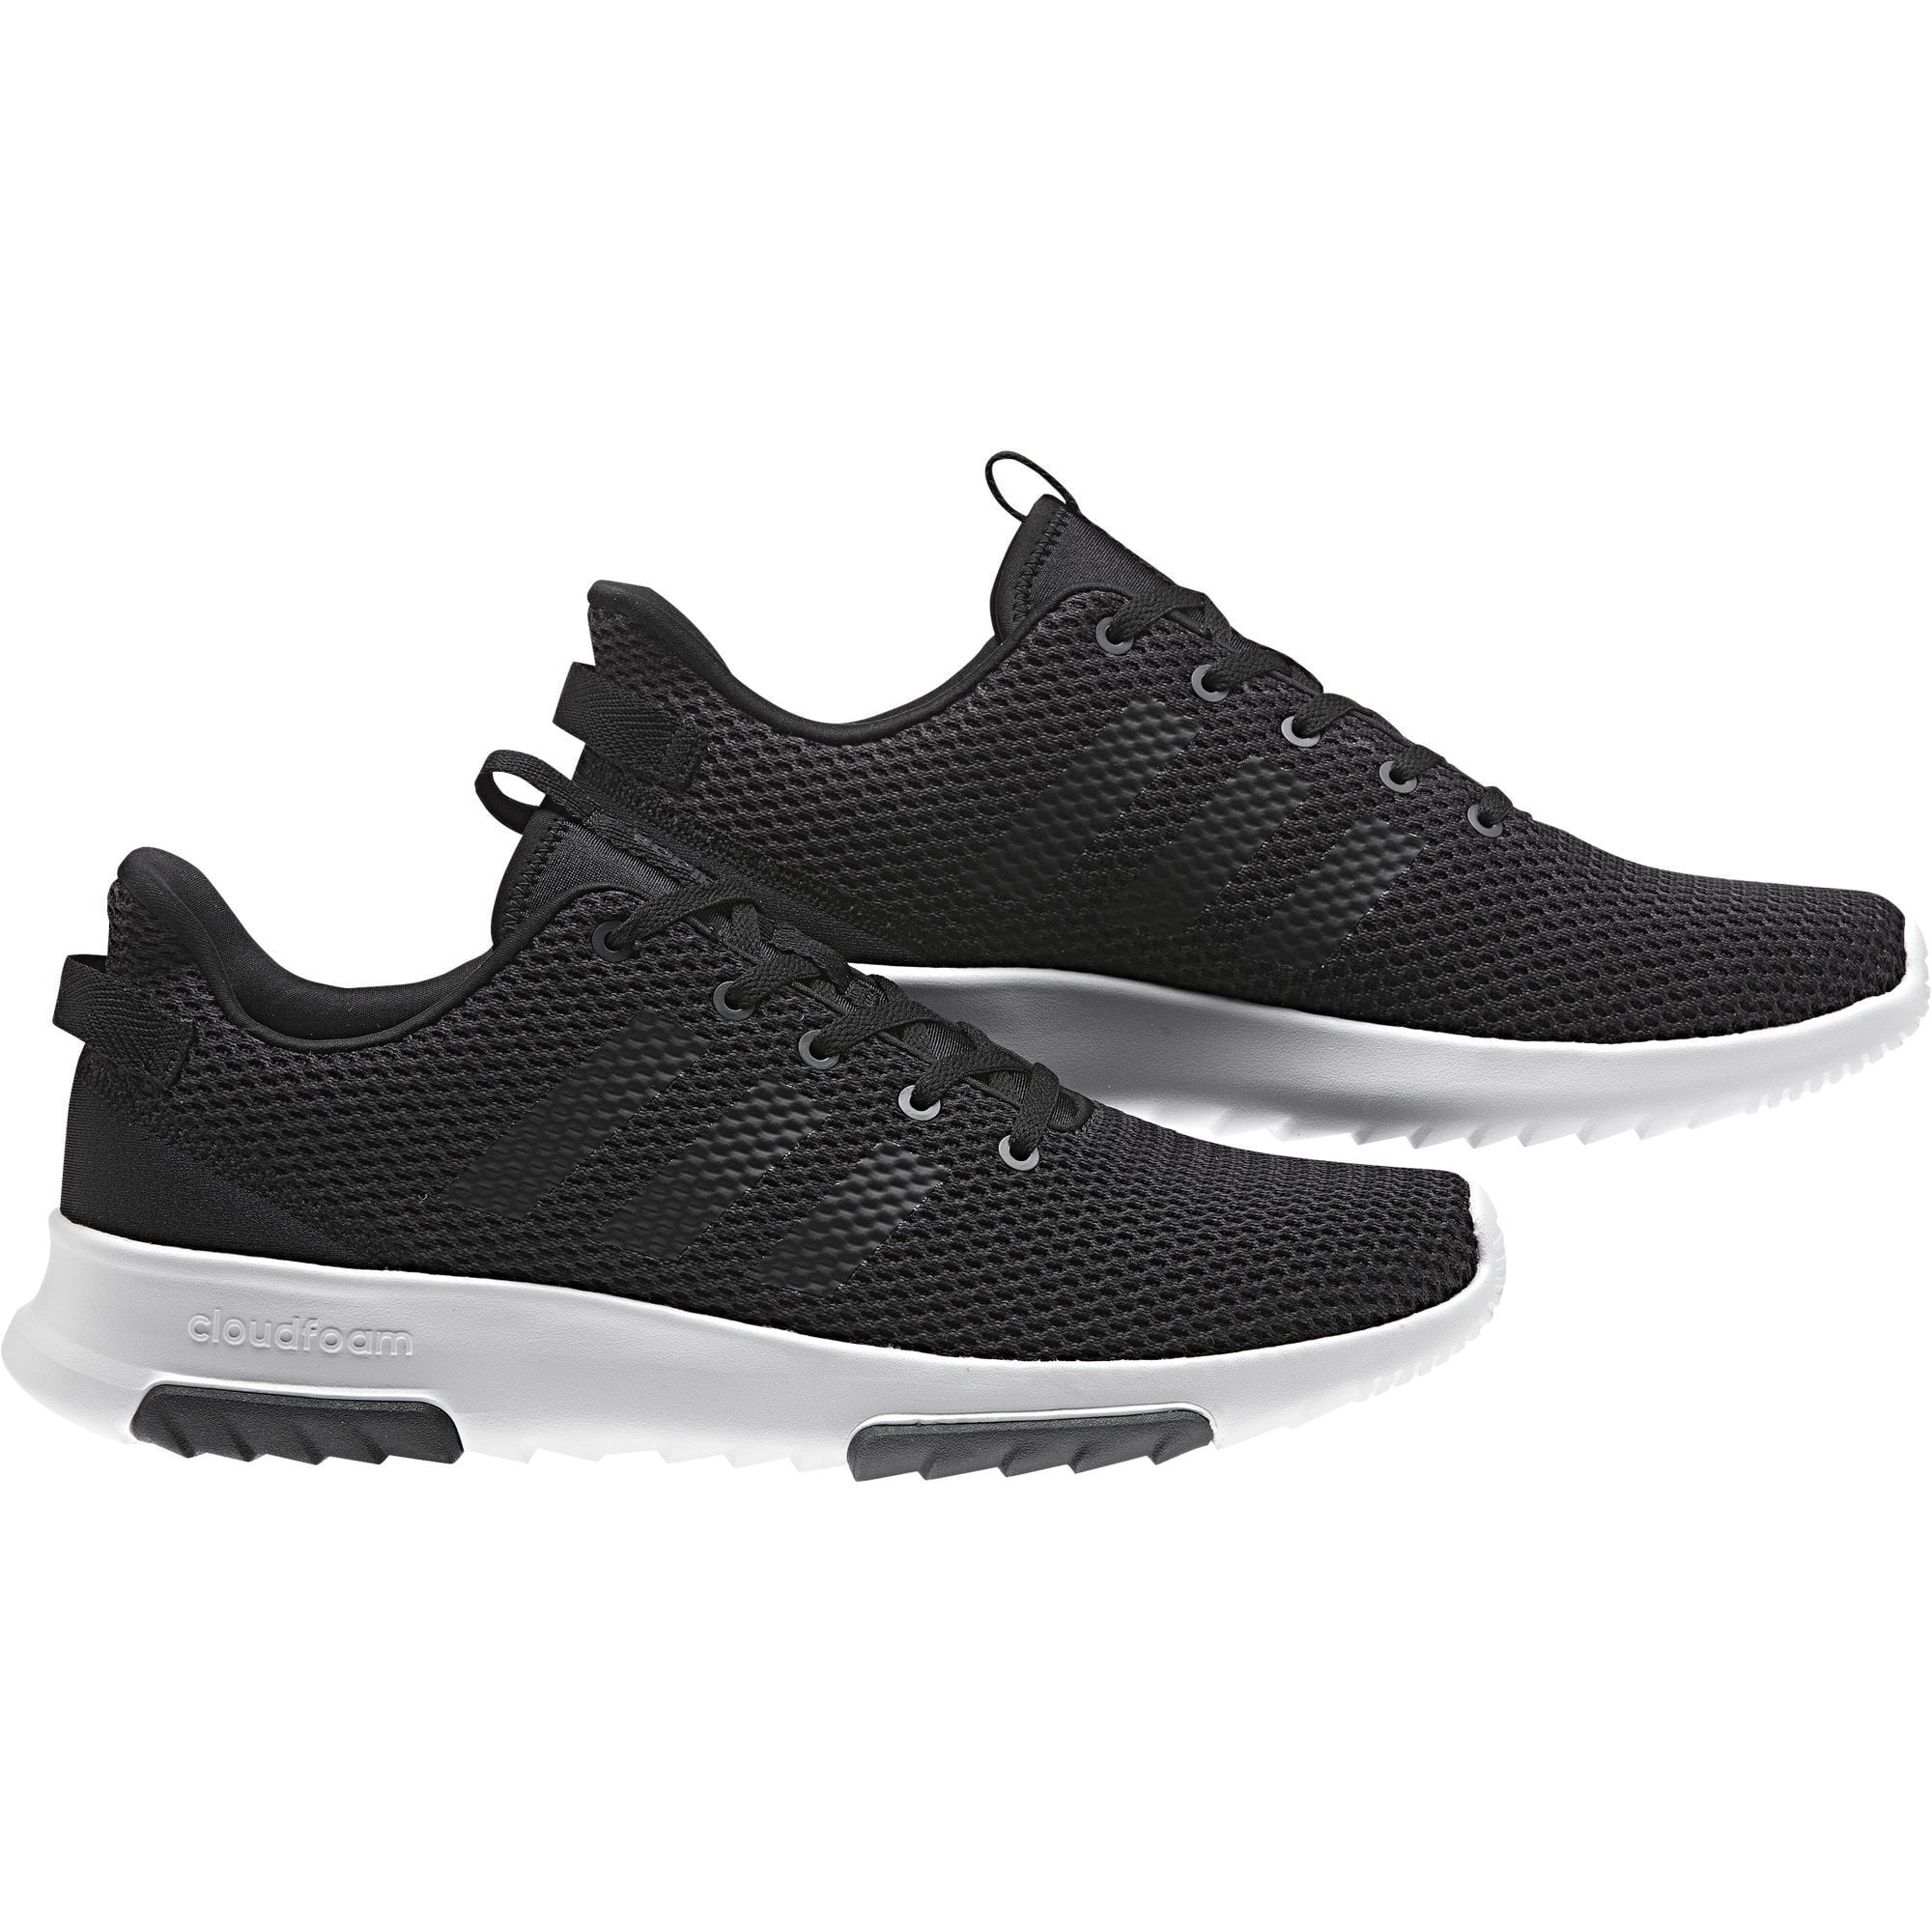 ADIDAS MEN'S SPORT INSPIRED CLOUDFOAM RACER TR BLACK SHOES